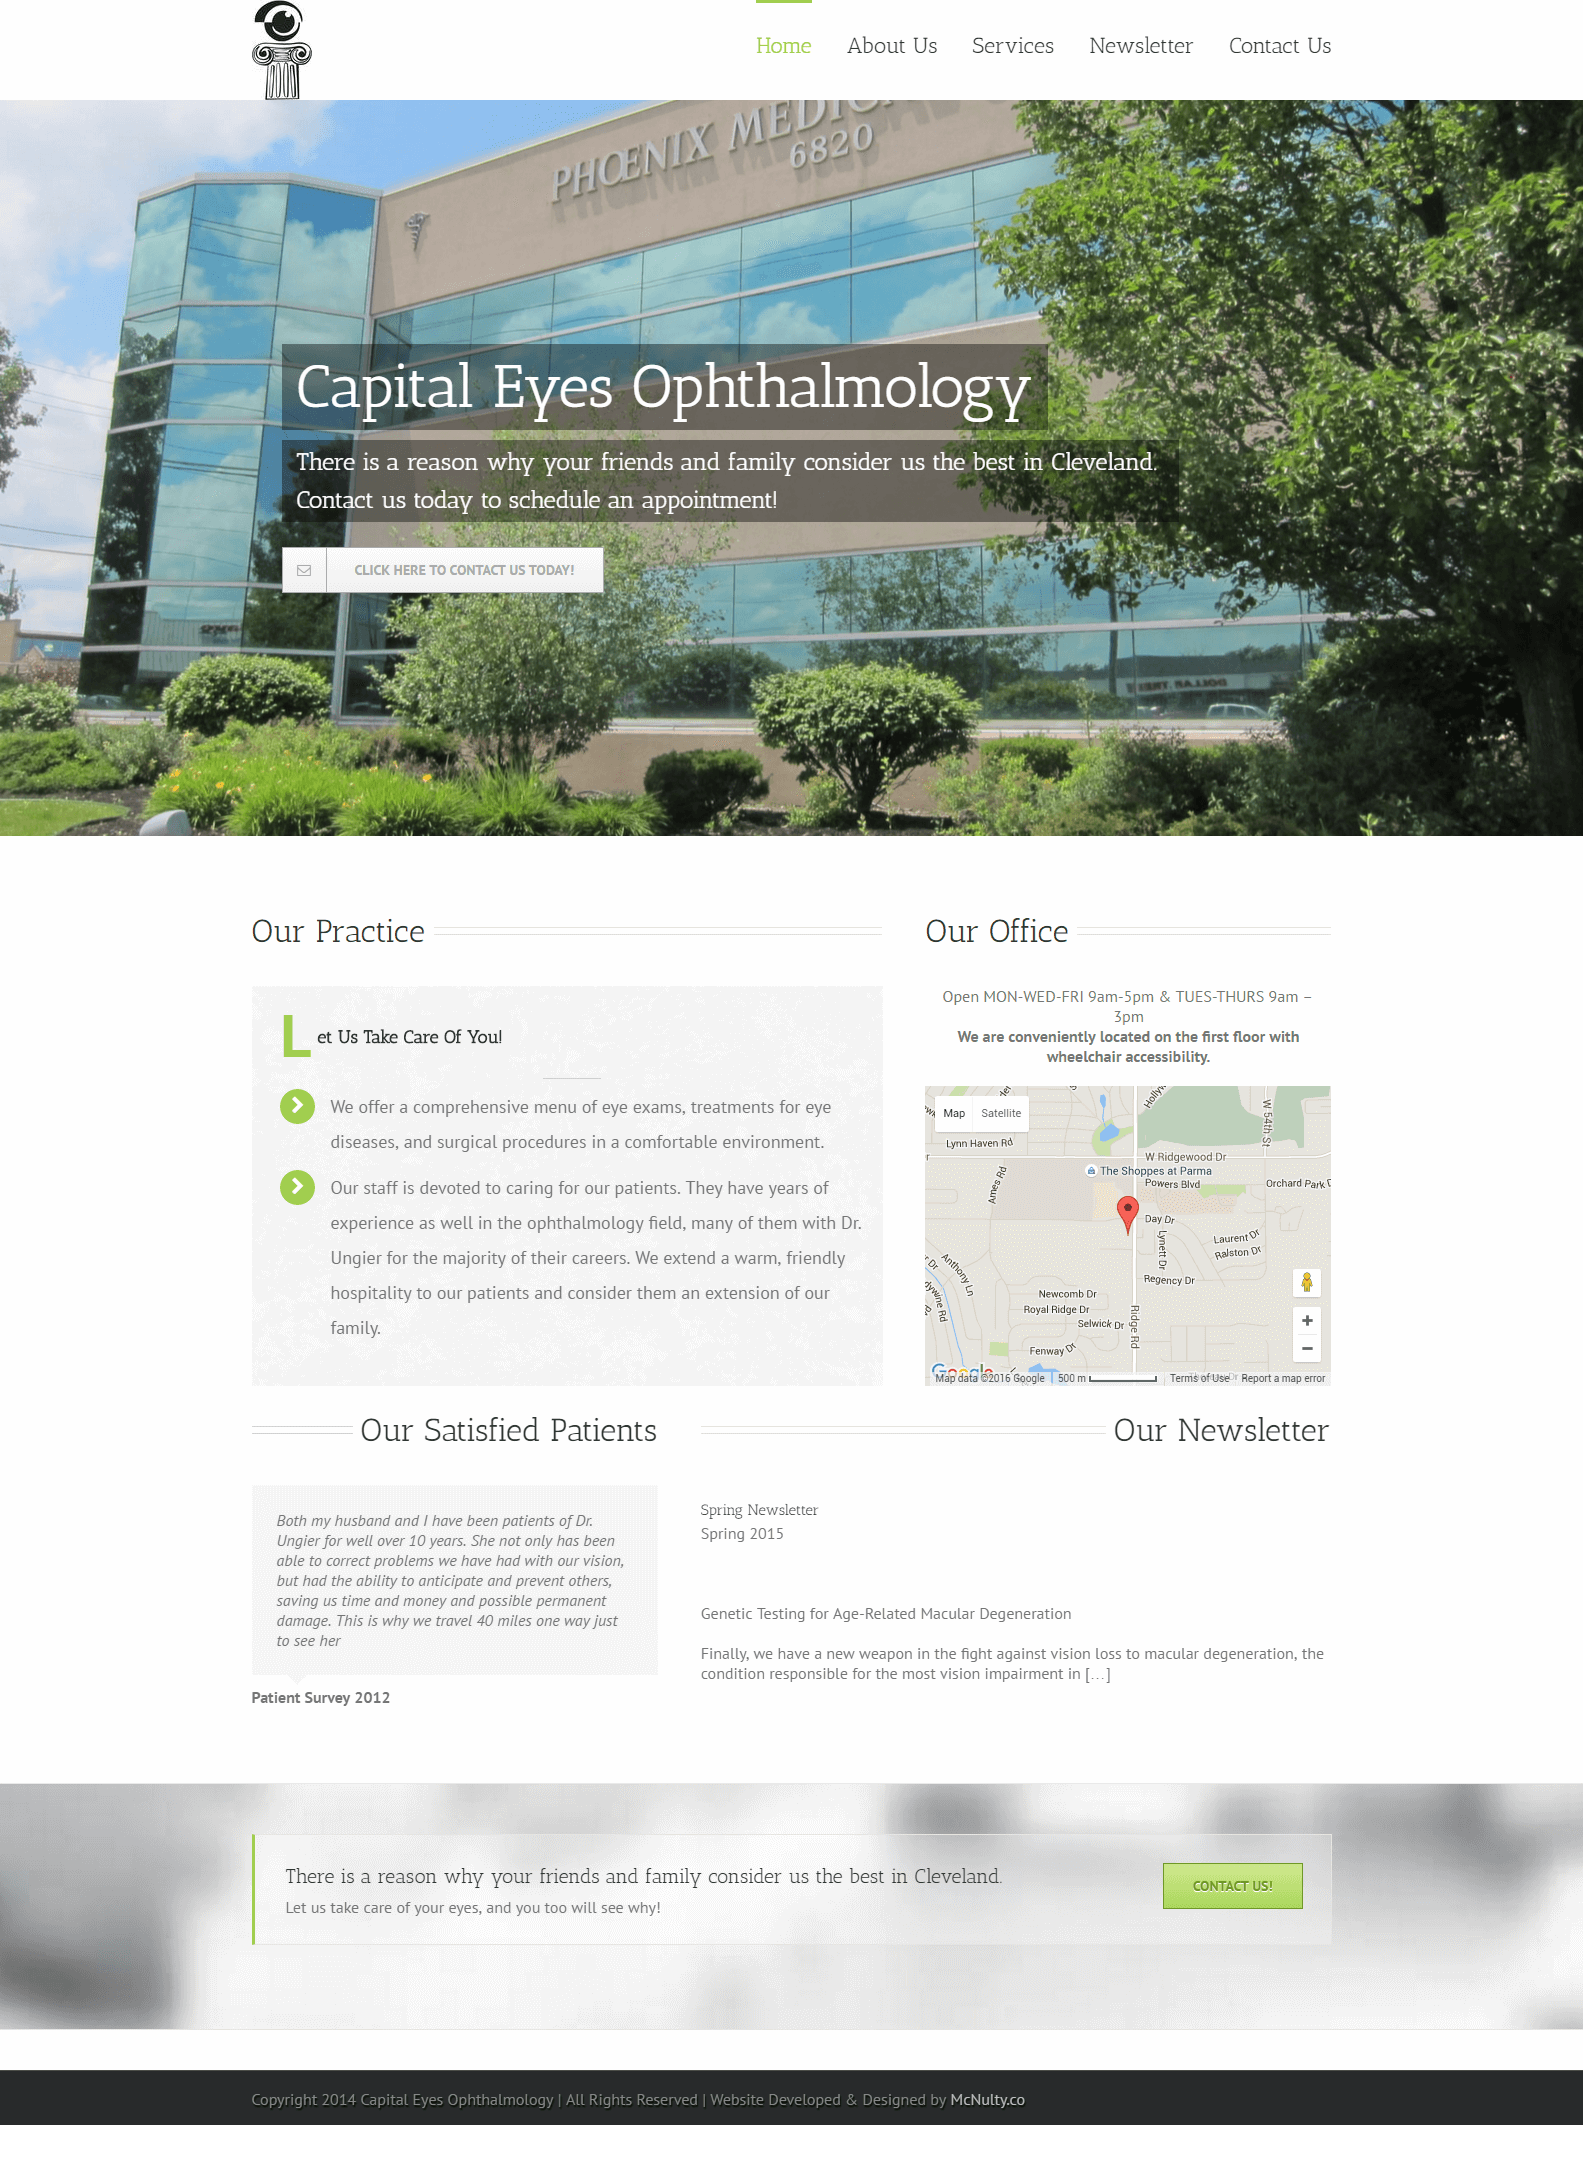 Capital Eyes Ophthalmology website